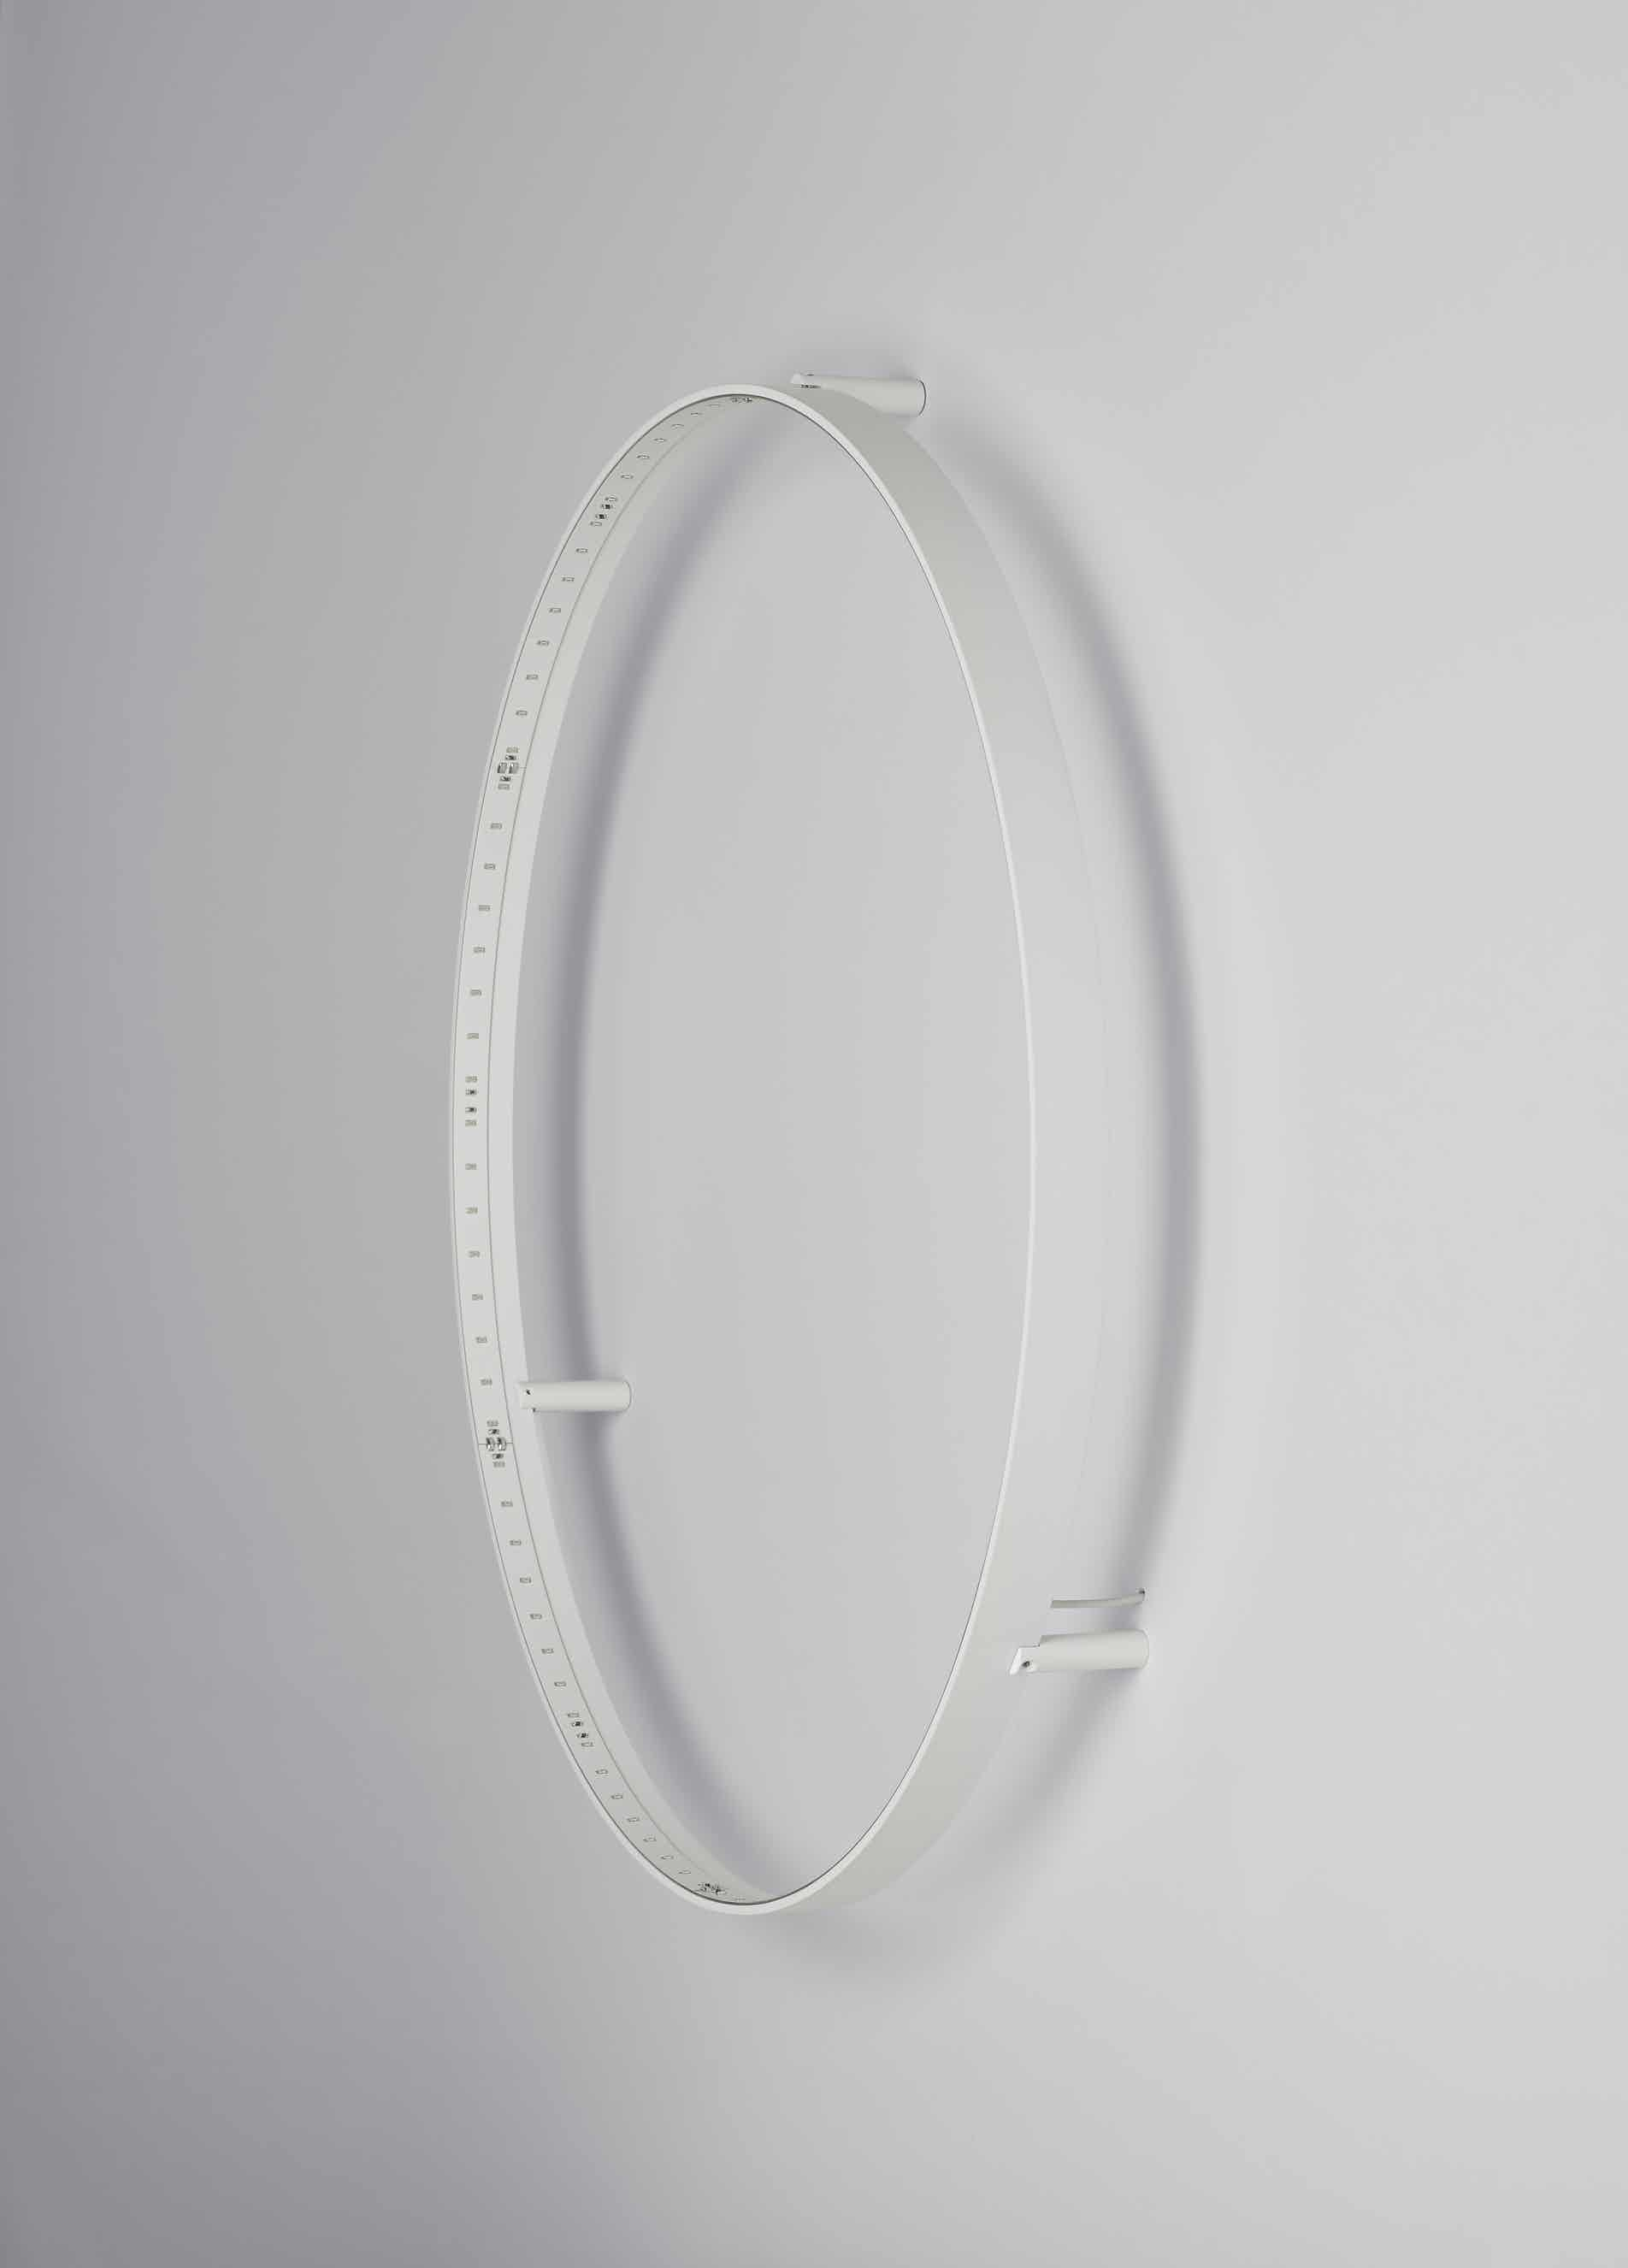 Le-deun-luminaires-curve-60-wall-lamp-white-profile-haute-living